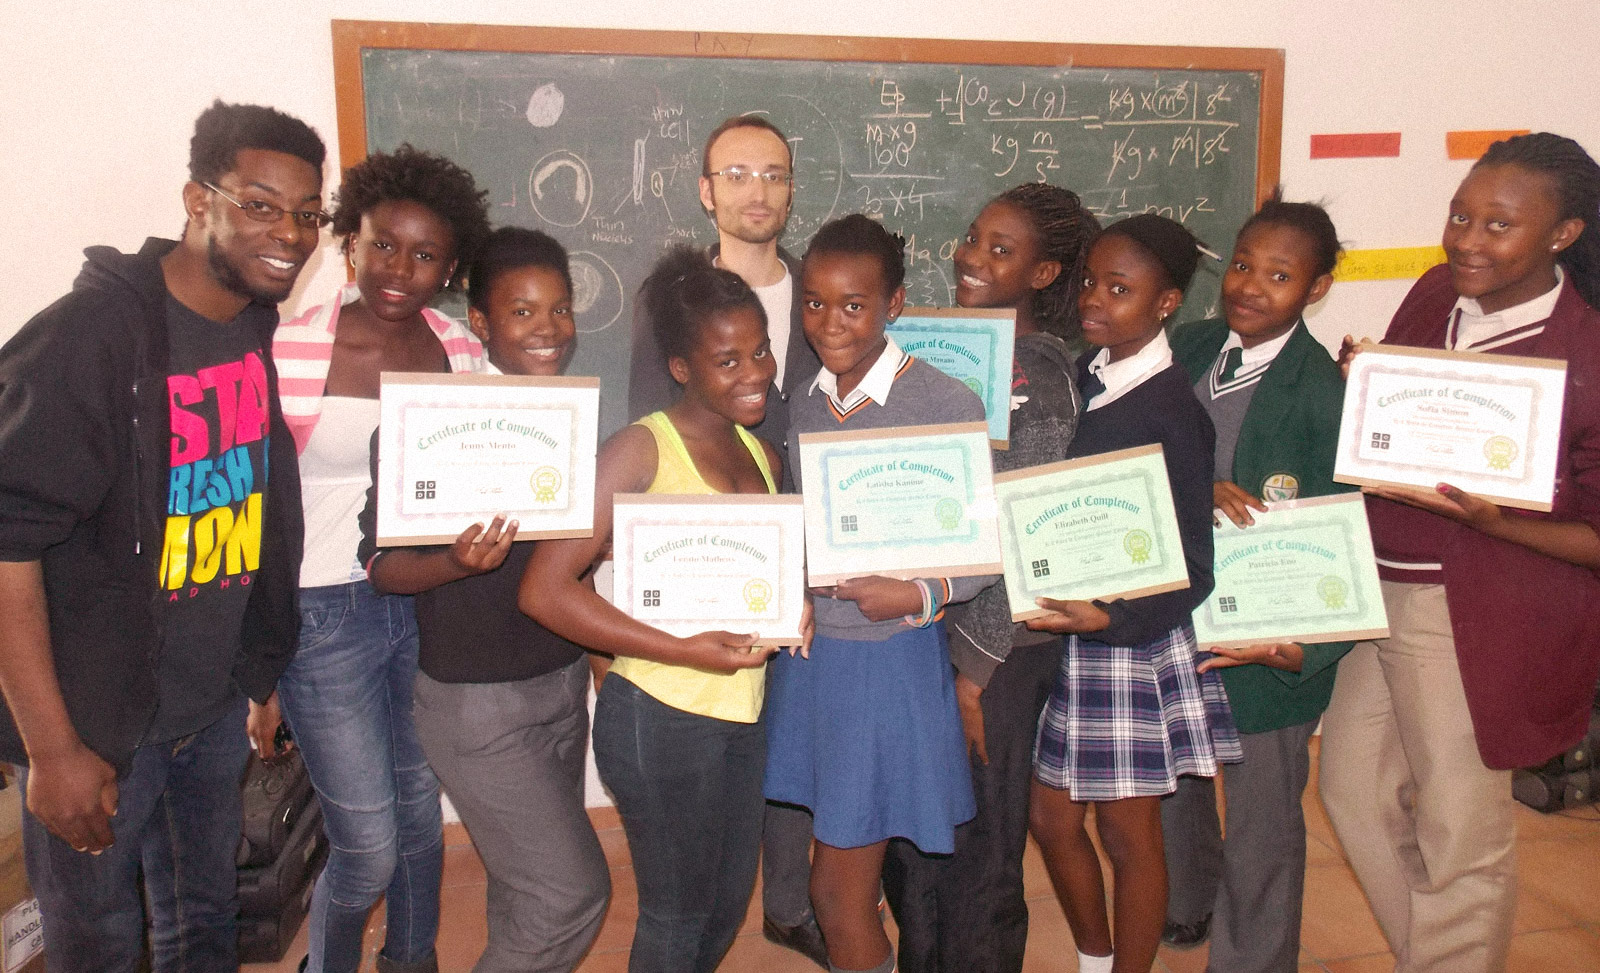 ICT - girls who code got certificates